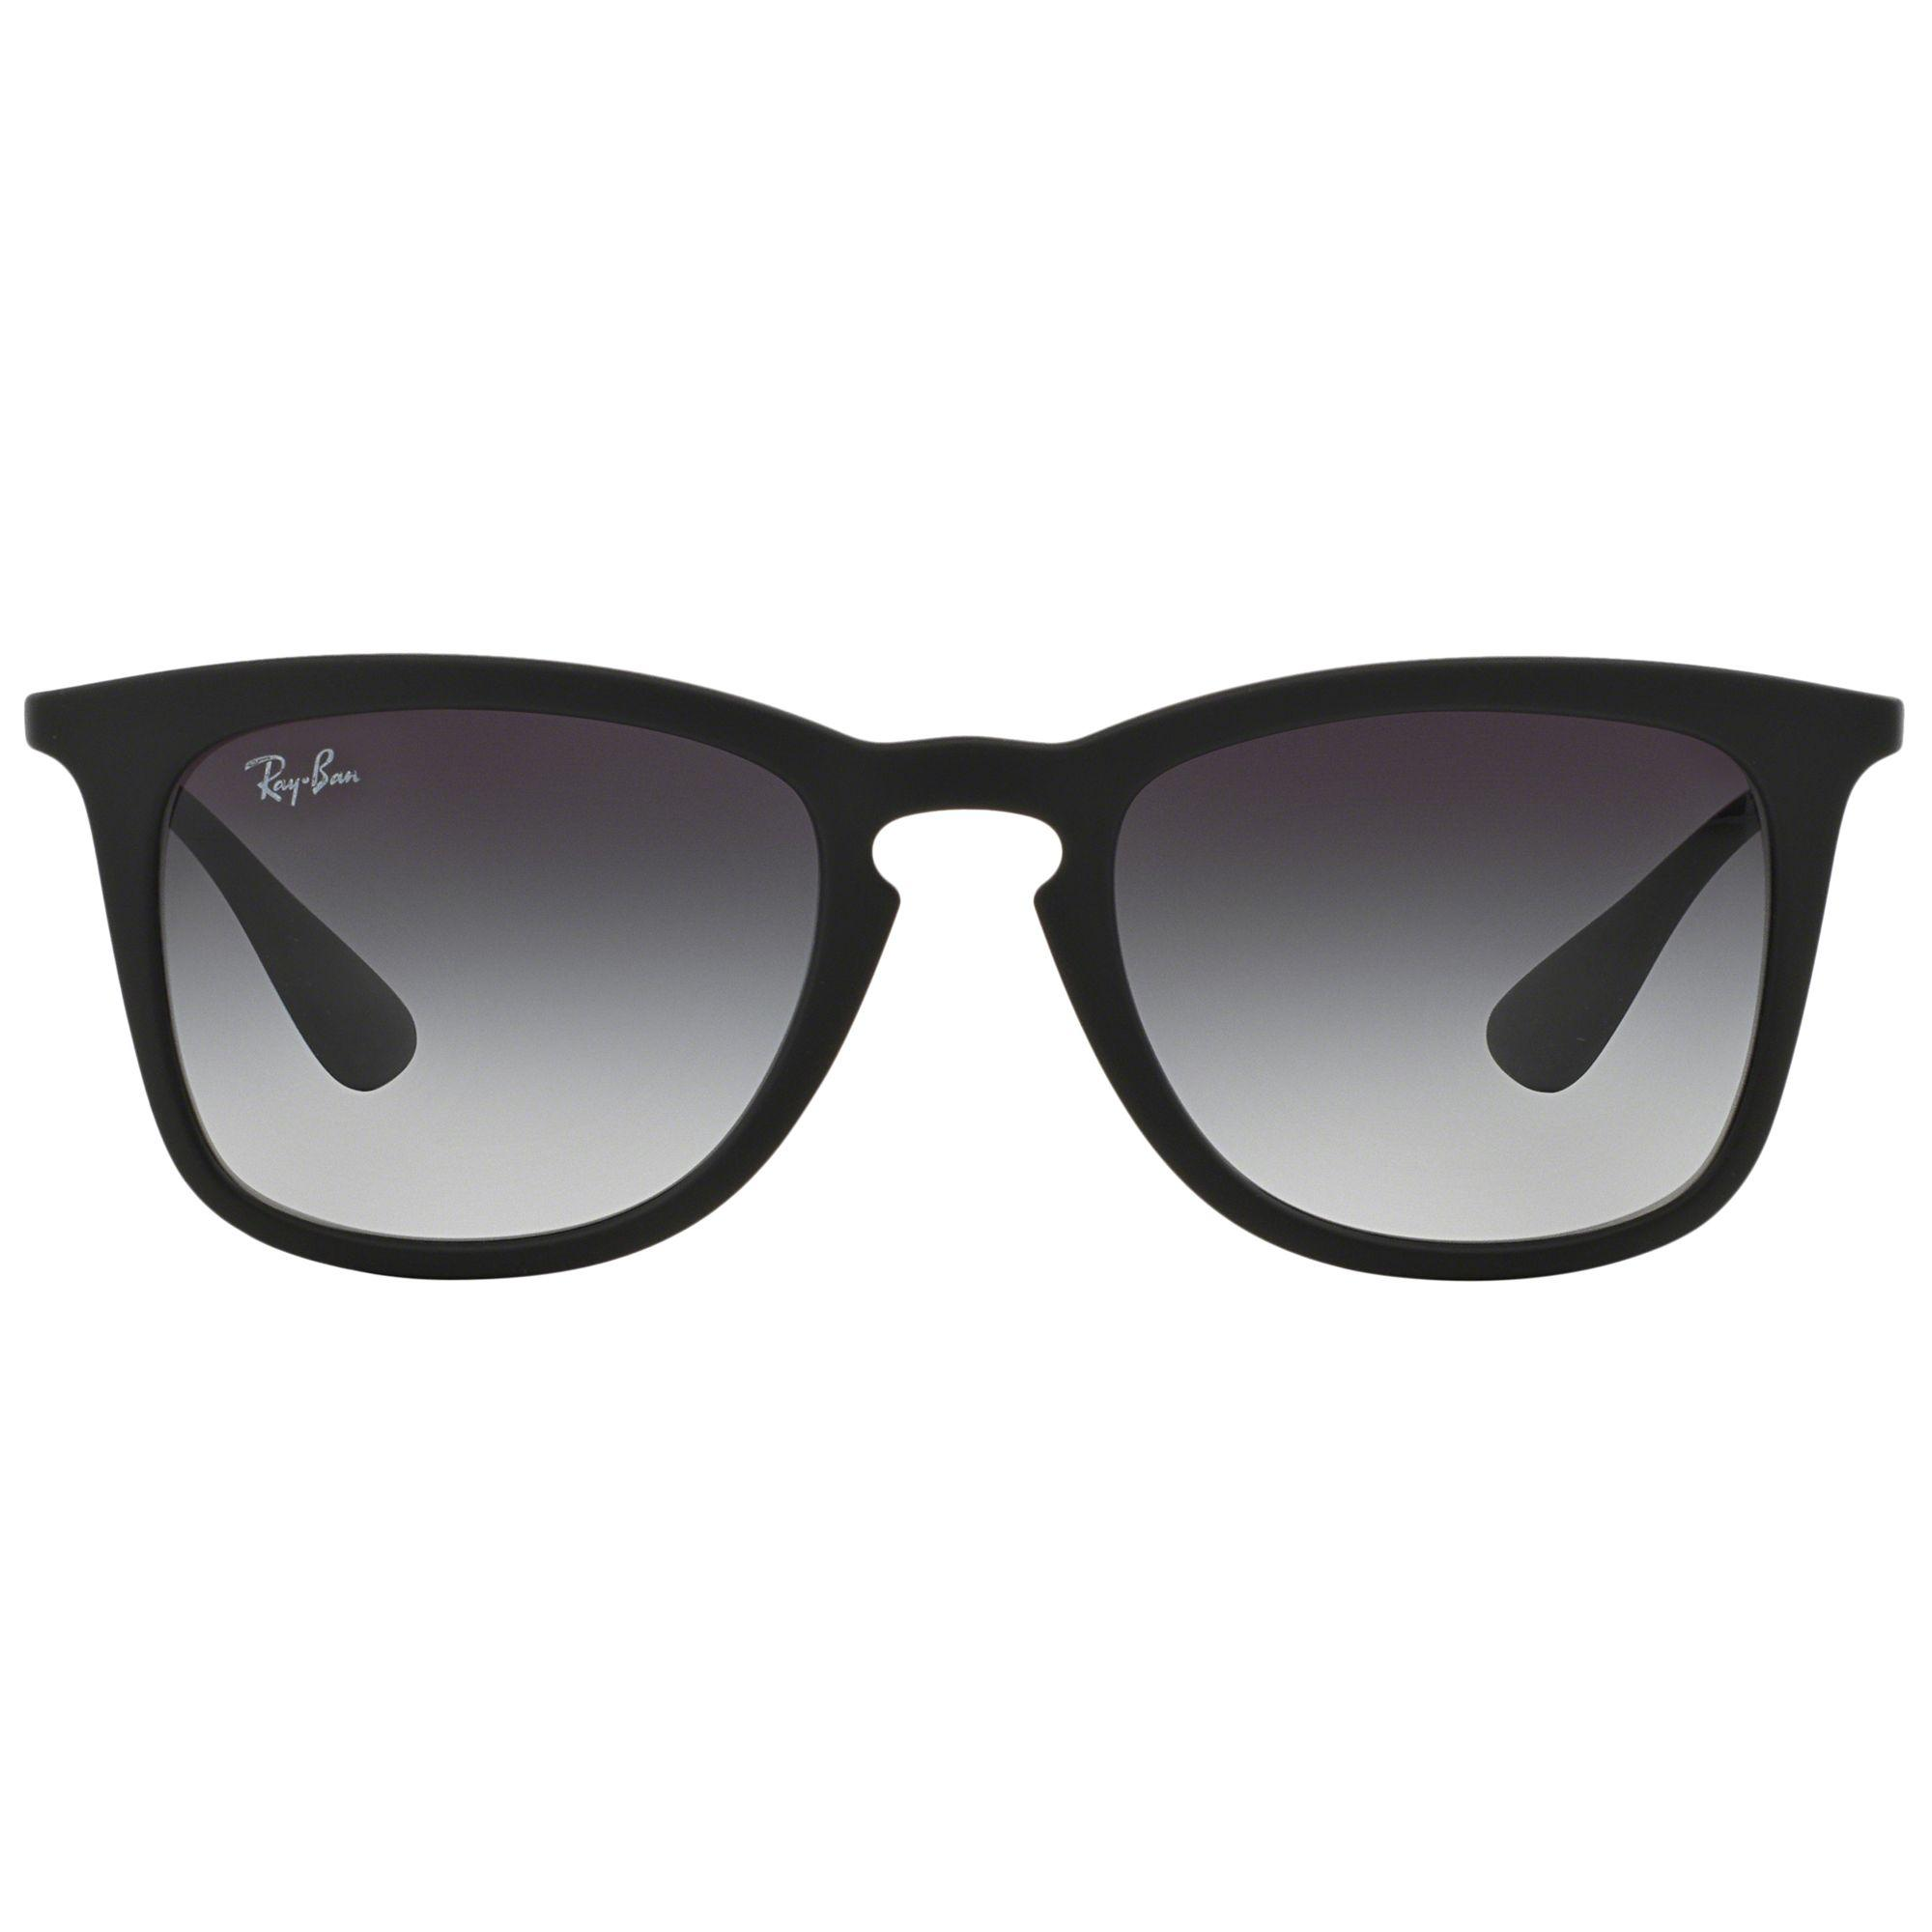 Ray-Ban Rb4221 Square Framed Sunglasses in Black